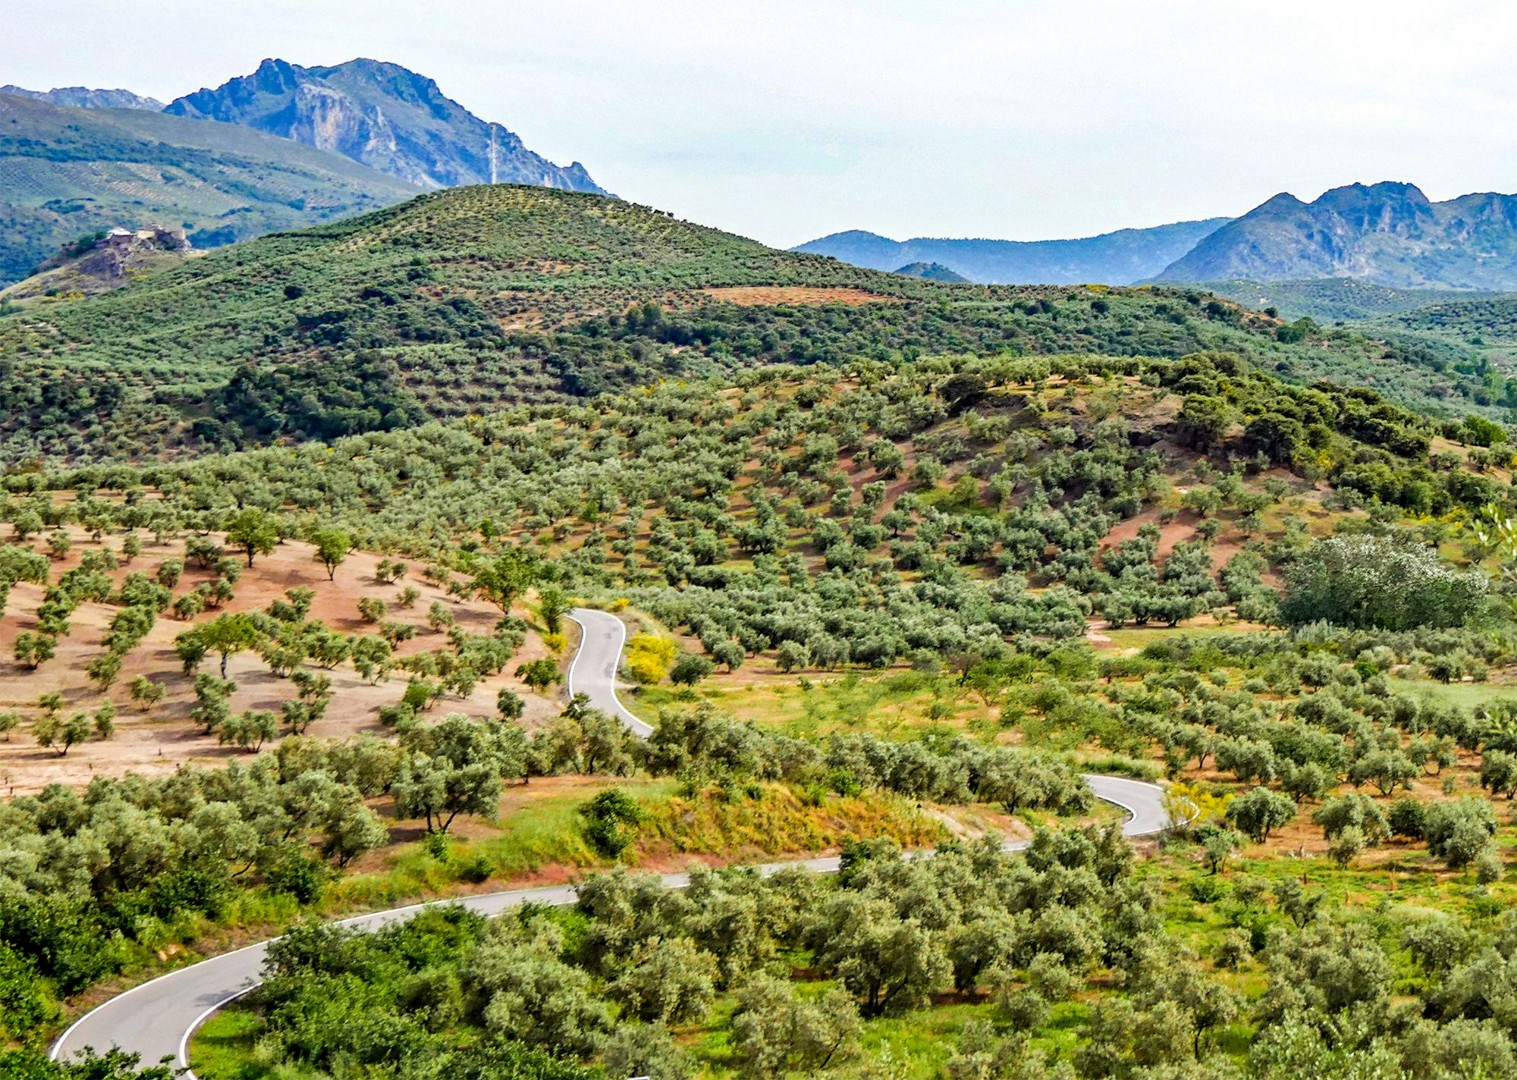 spain-saddle-skedaddle-cycling-holidays-road-winding-through-the-olives.jpg - Spain - Basque Country to Andalucia - North to South (21 Days) - Guided Road Cycling Holiday - Road Cycling